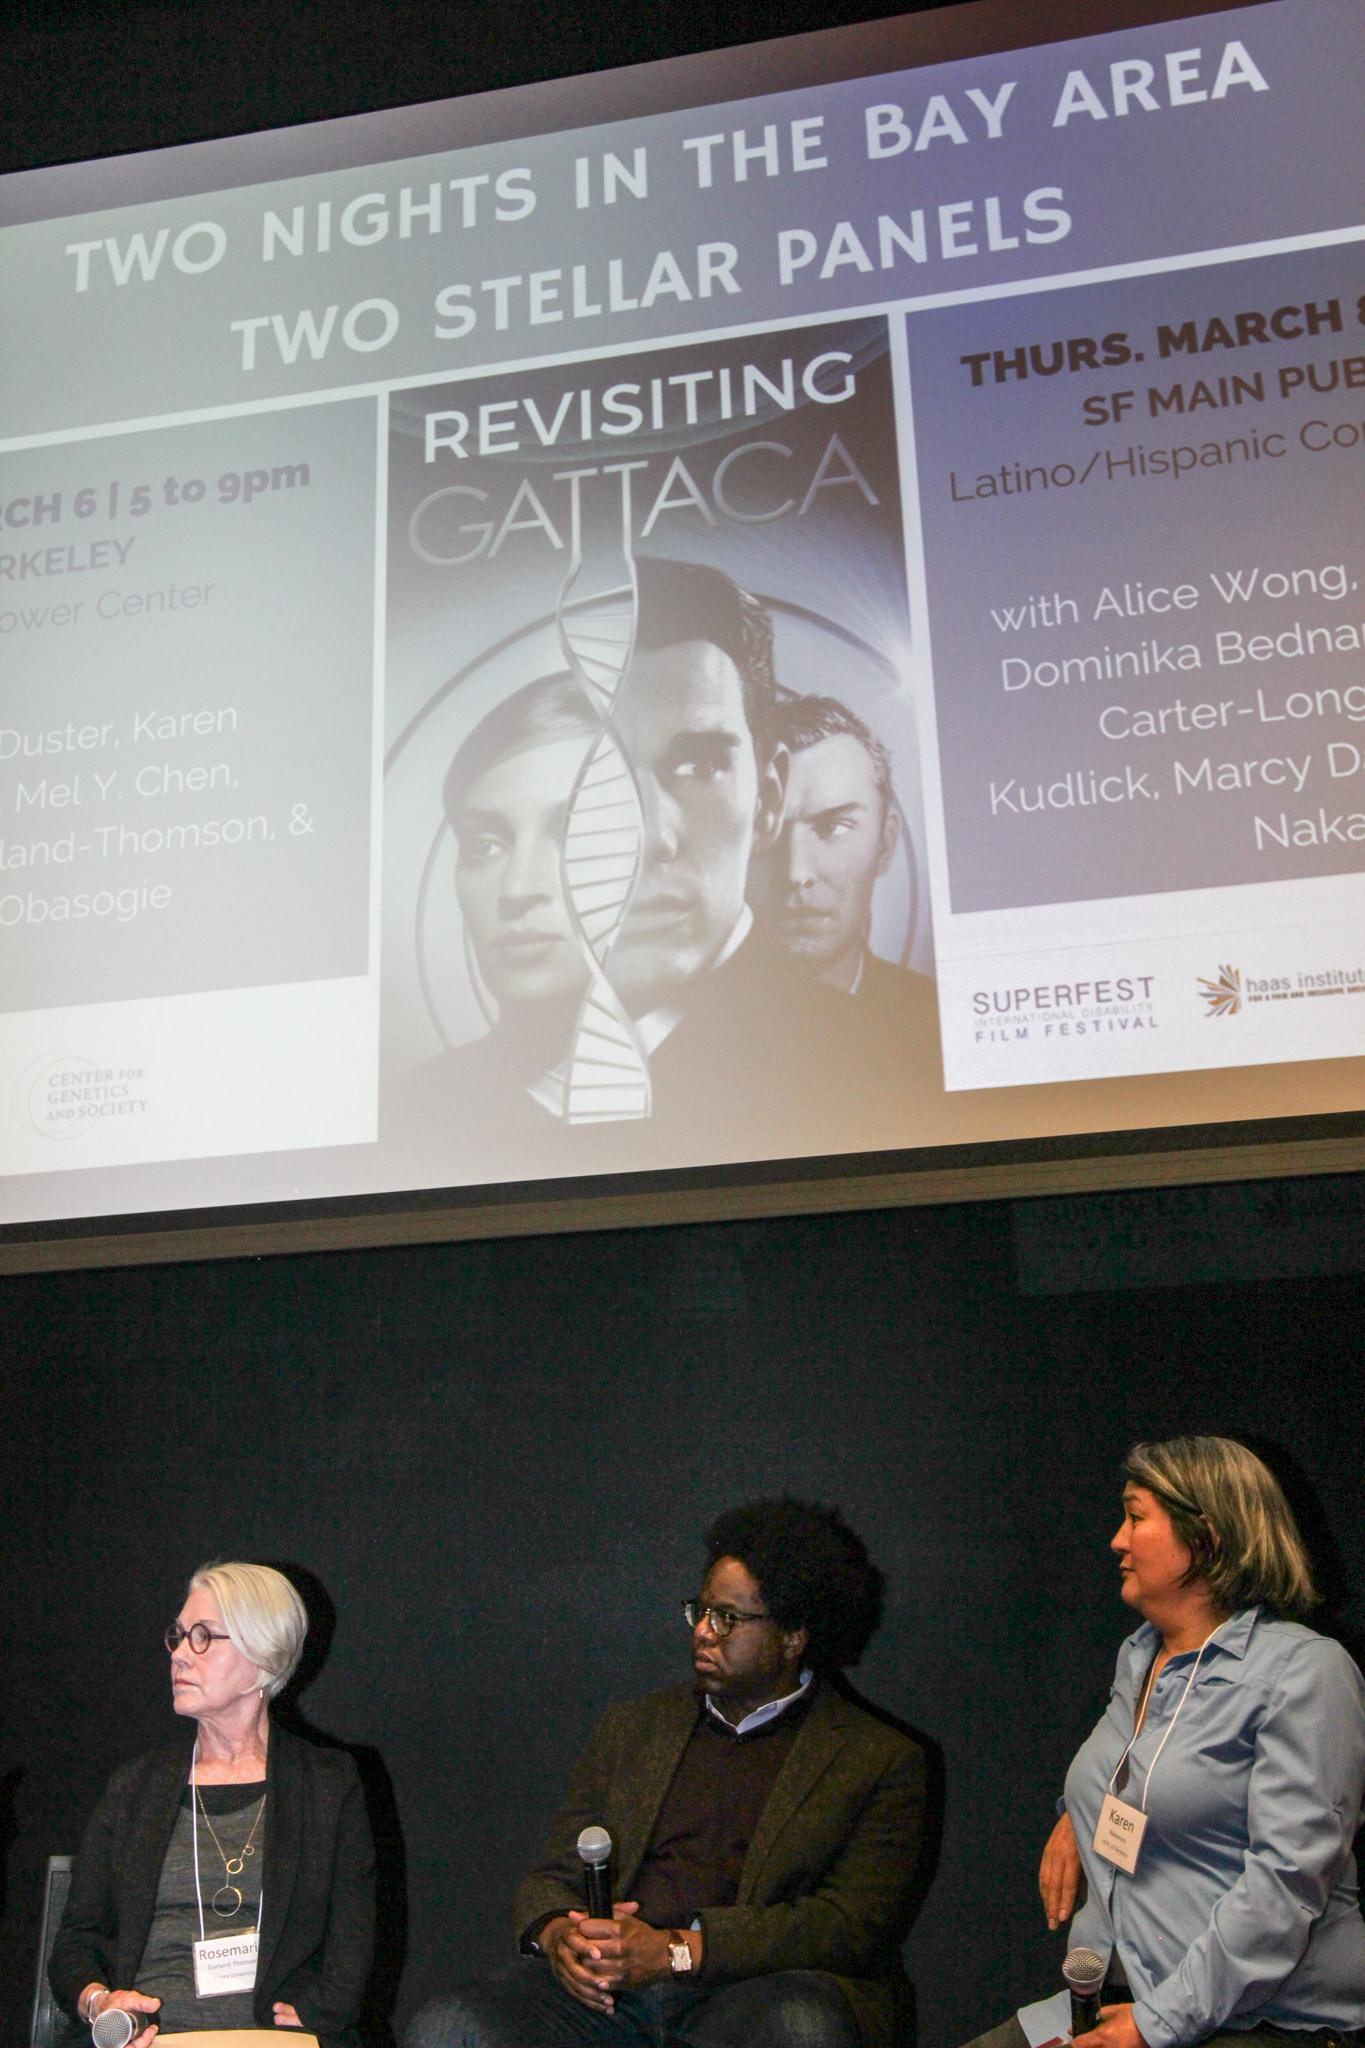 "Panelists Rosemarie Garland-Thomson, Osagie Obasogie, and Karen Nakamura sit under a projected image that reads ""TWO NIGHTS IN THE BAY AREA. TWO STELLAR PANELS."" Below, the words ""Revisiting GATTACA"" are superimposed on the Gattaca movie poster, featuring the faces of Uma Thurman, Ethan Hawke, and Jude Law."